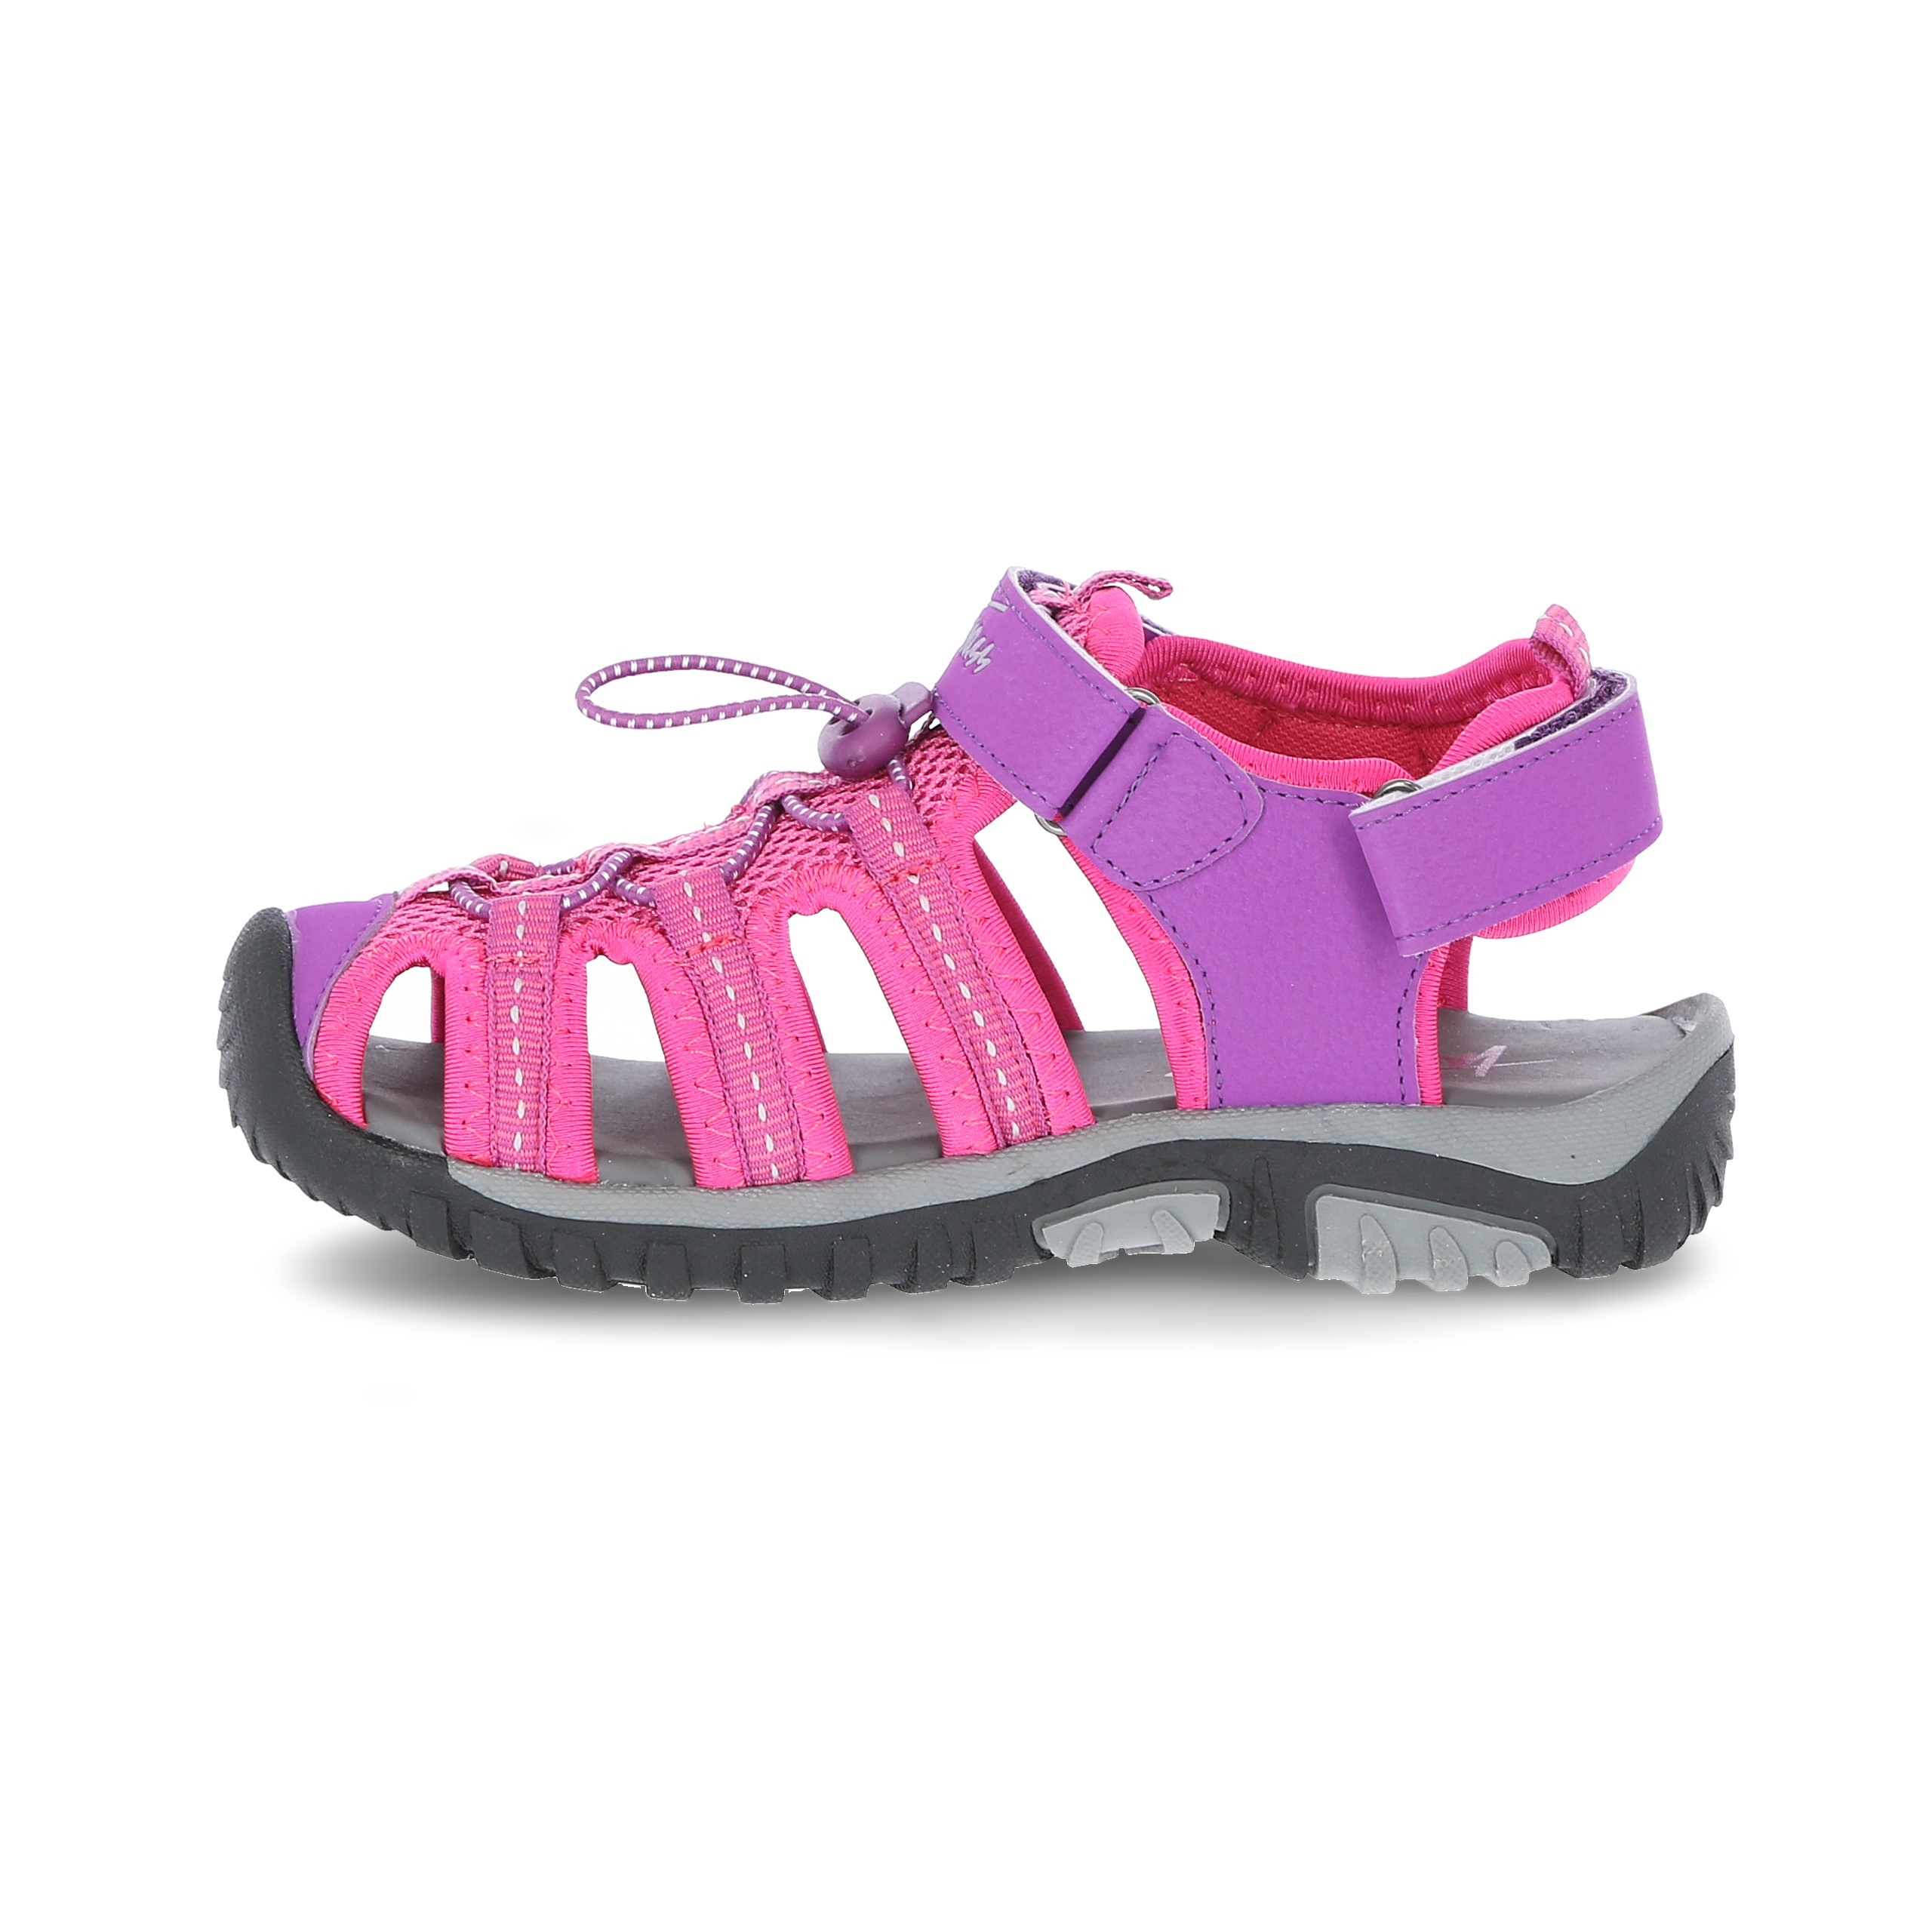 Trespass-Kids-Girls-Boys-Summer-Beach-Sandals-Casual-Walking-Shoes thumbnail 23